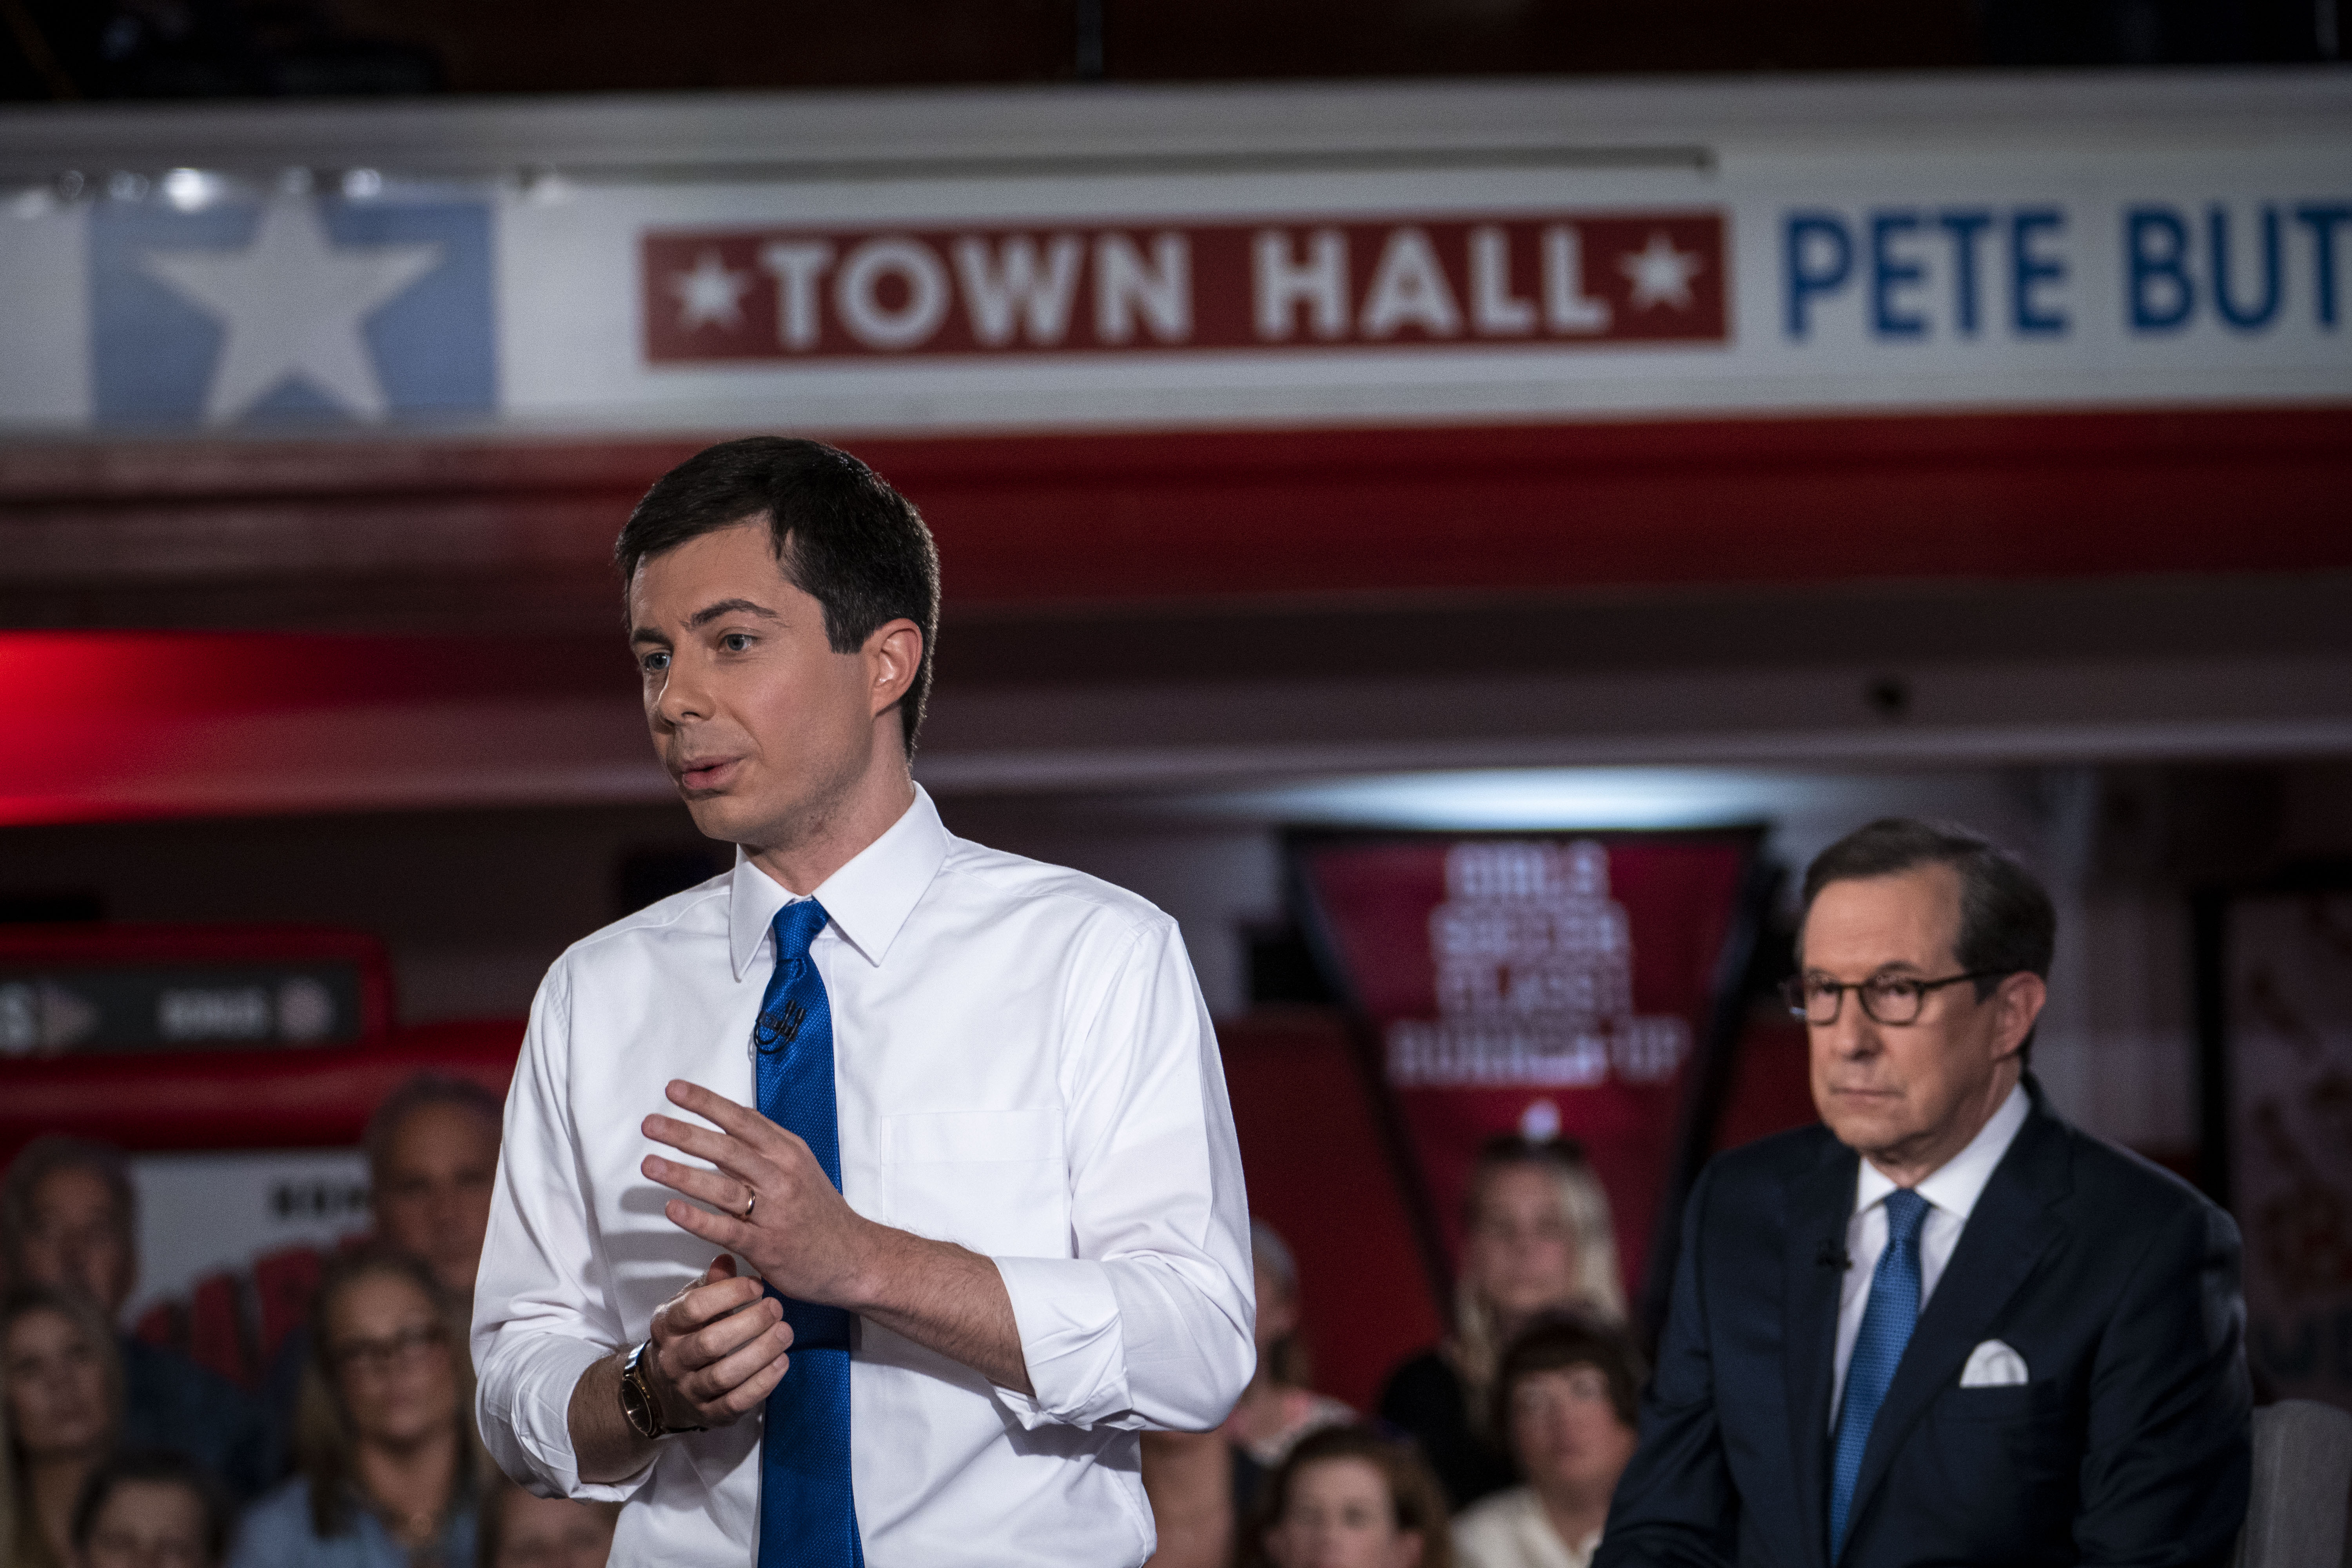 South Bend, Indiana Mayor Pete Buttigieg speaks during a town hall with Fox News (Sarah Rice/Getty Images)